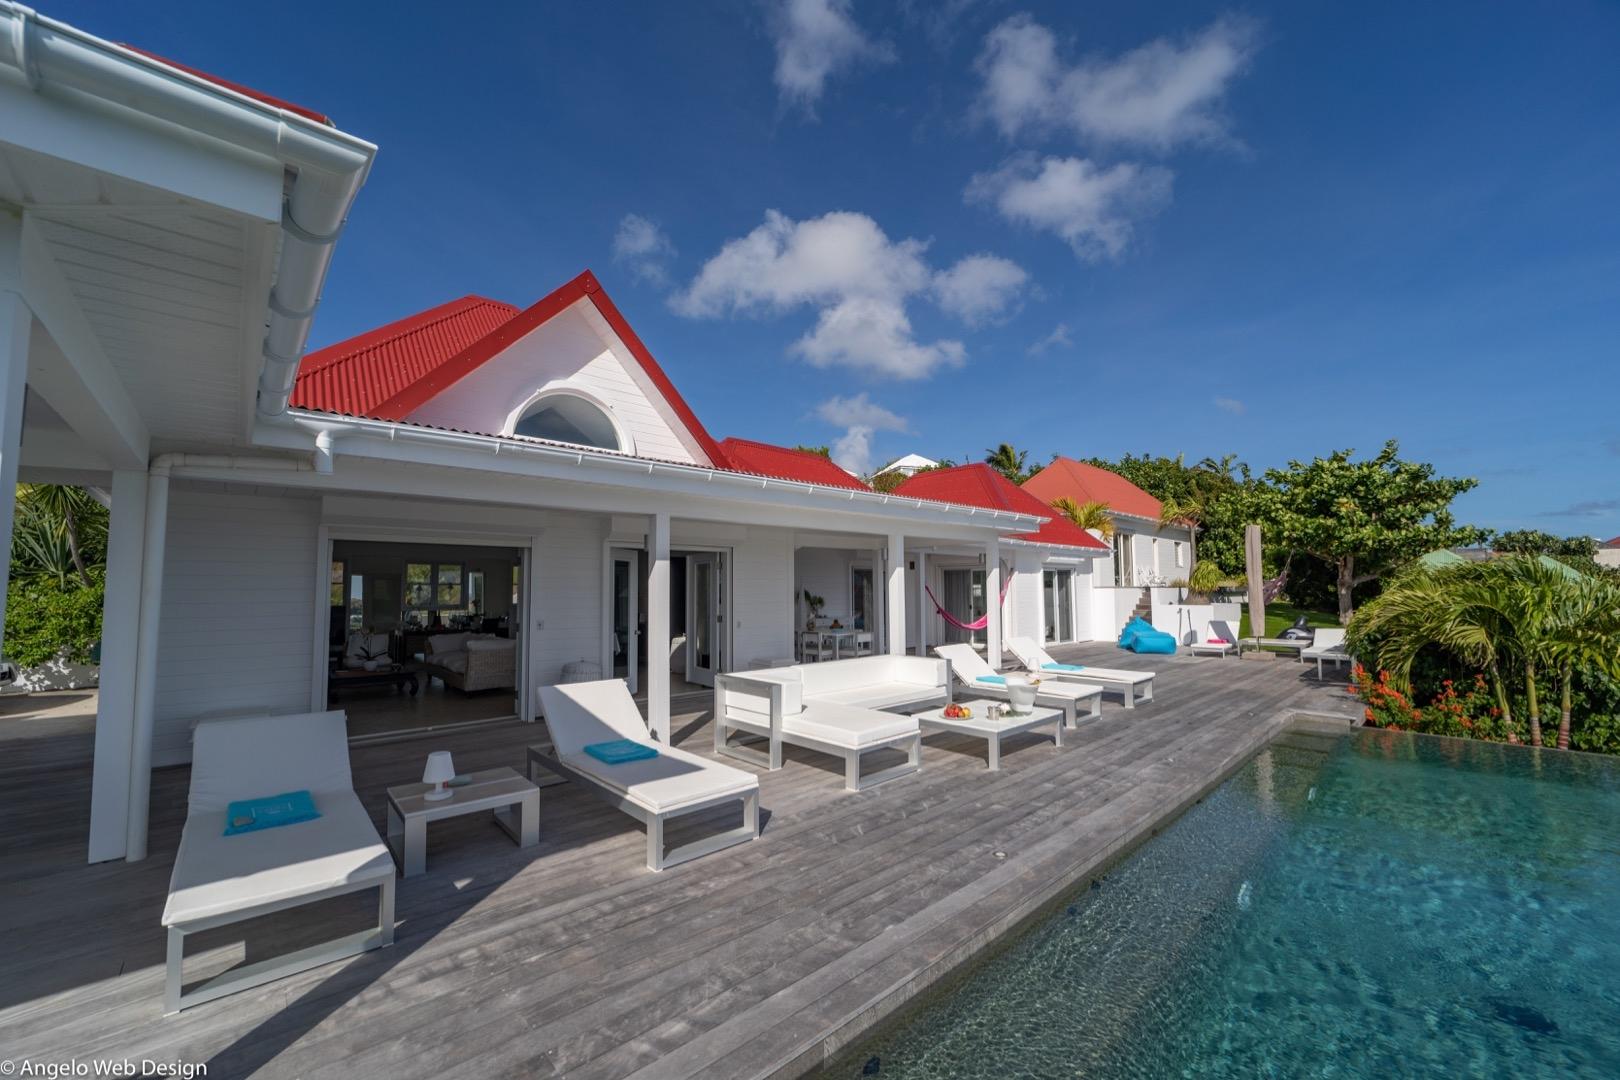 Luxury villa rentals caribbean - St barthelemy - Grand cul de sac - No location 4 - Minou - Image 1/38